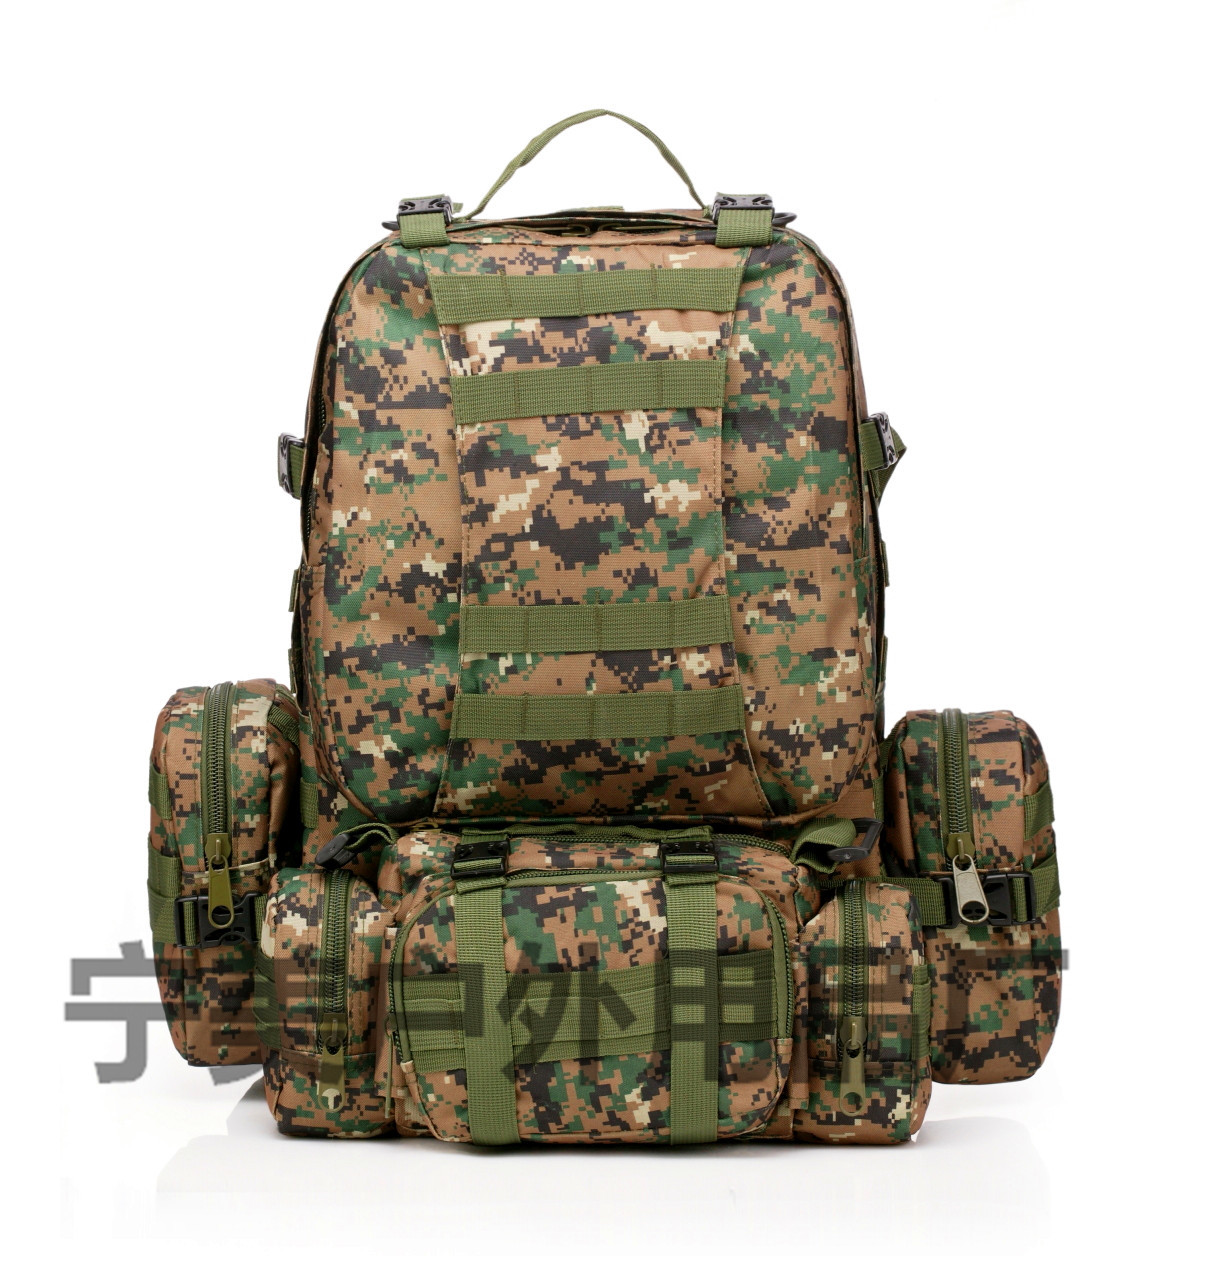 Men Camping Travel Bag Oxford Cloth Outdoor Backpack Army Camouflage Hiking Tactical Bag Mountain Climbing Large Combination Bac